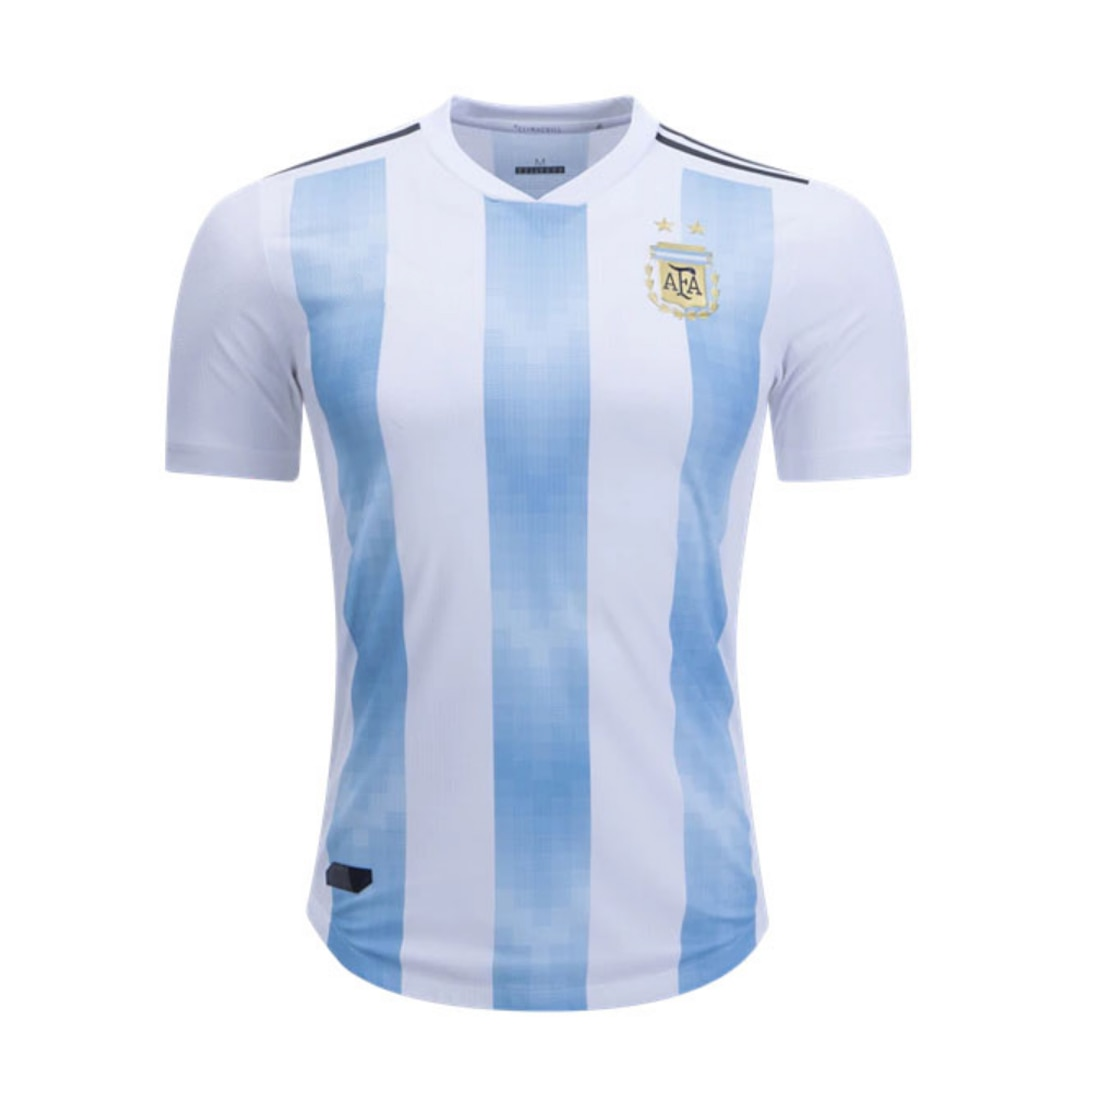 Fifa world cup Argentina White Blue National Team Jersey Thai Quality Paytm Mall Rs. 620.00